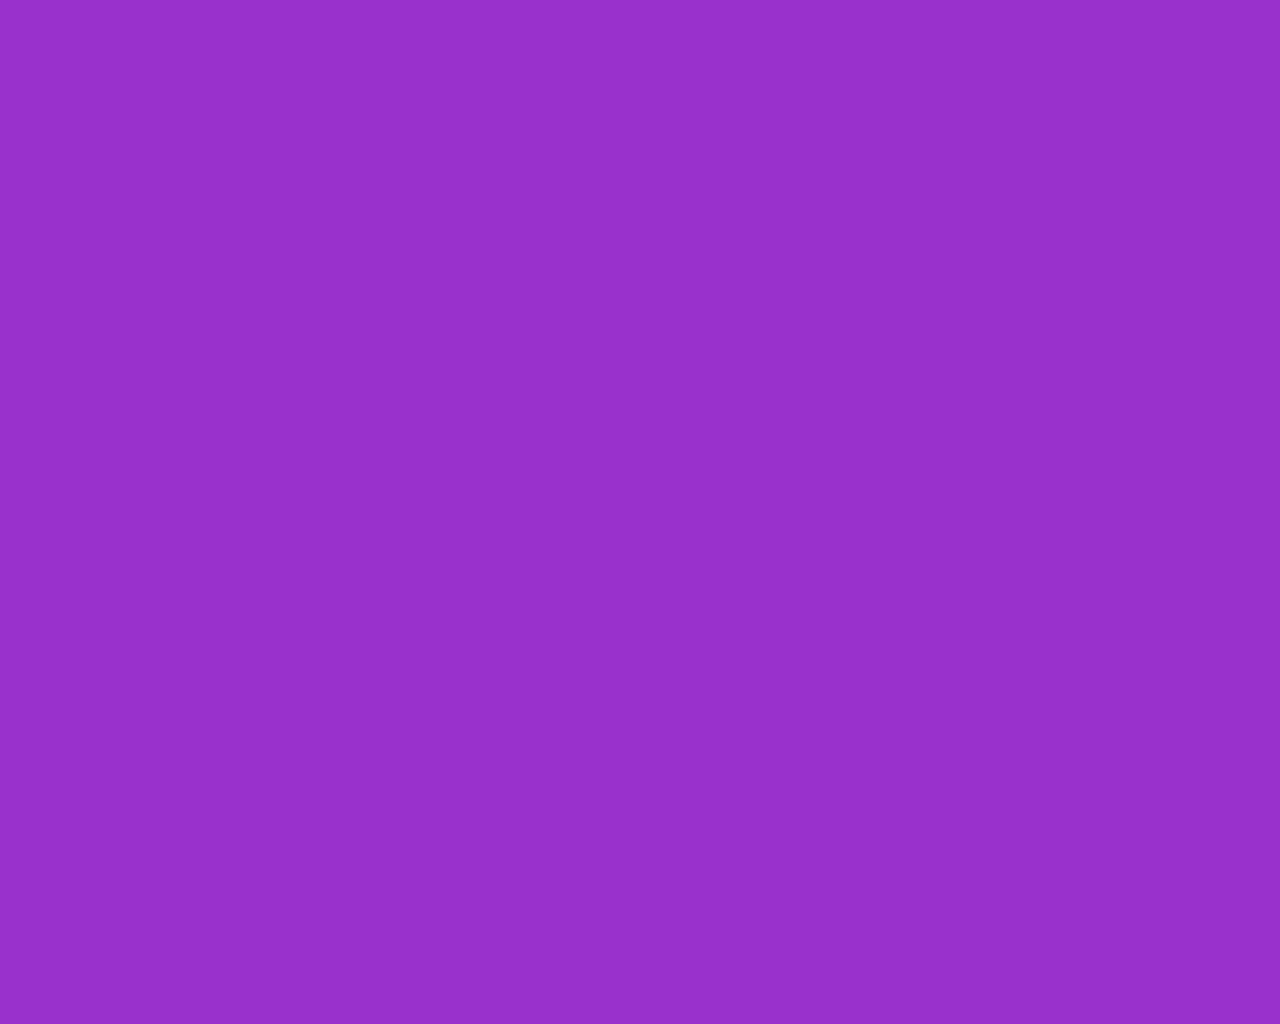 1280x1024 Dark Orchid Solid Color Background